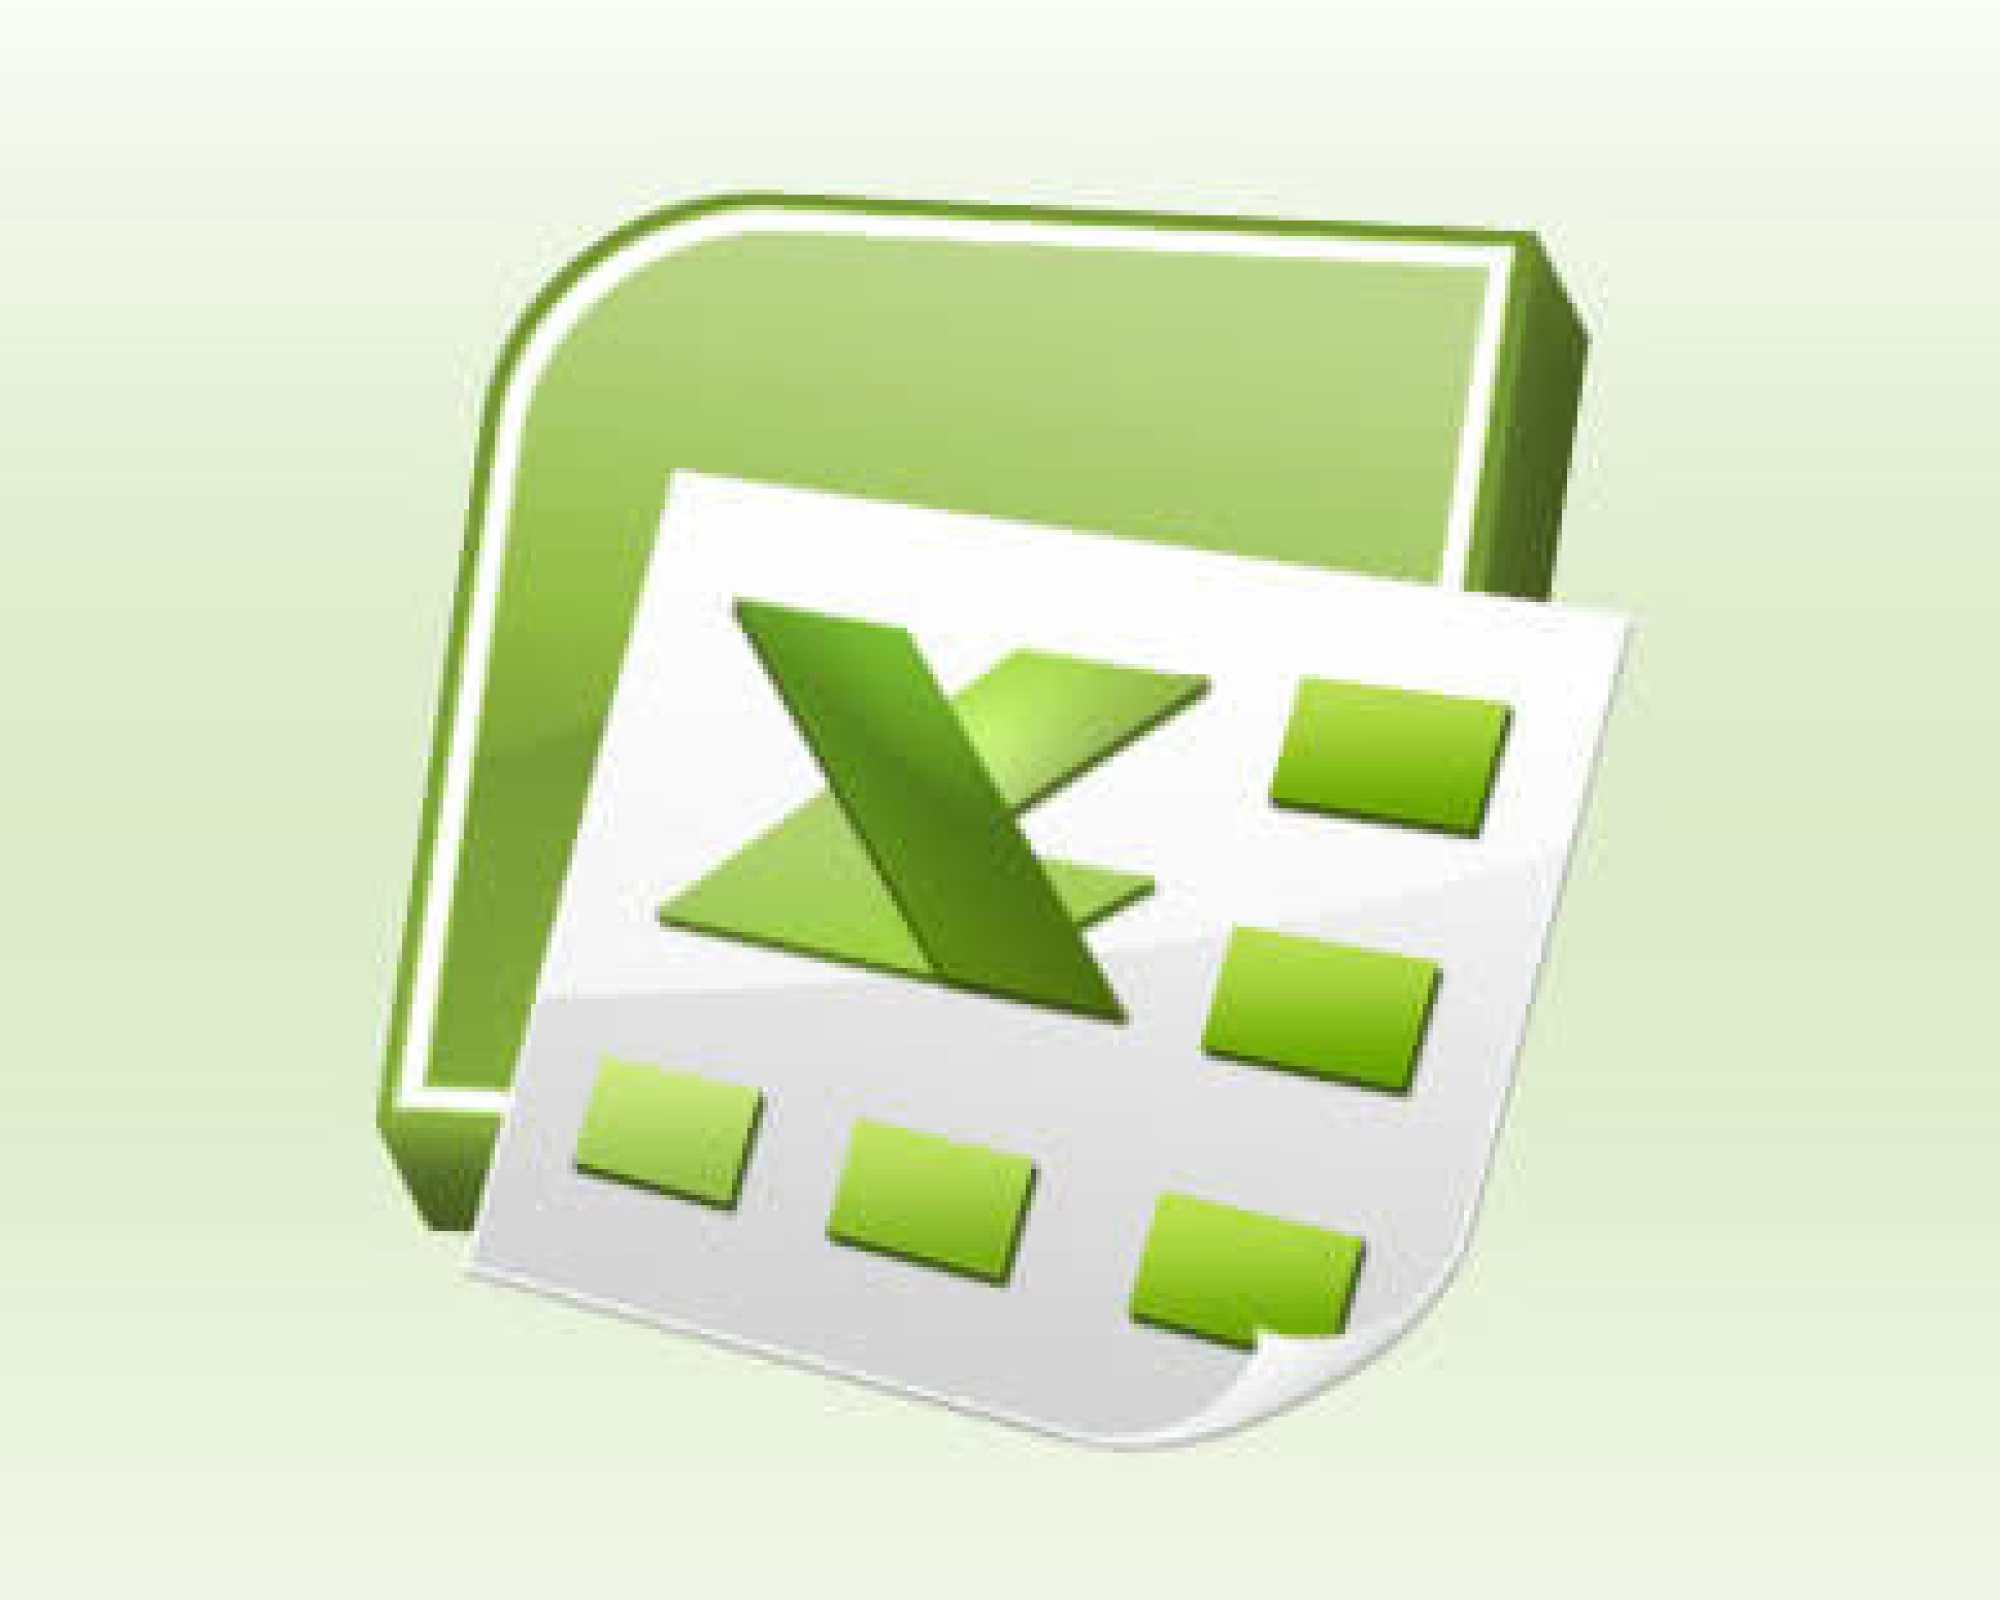 Free open to buy excel spreadsheet laobingkaisuo open to buy excel spreadsheet alramifo Images